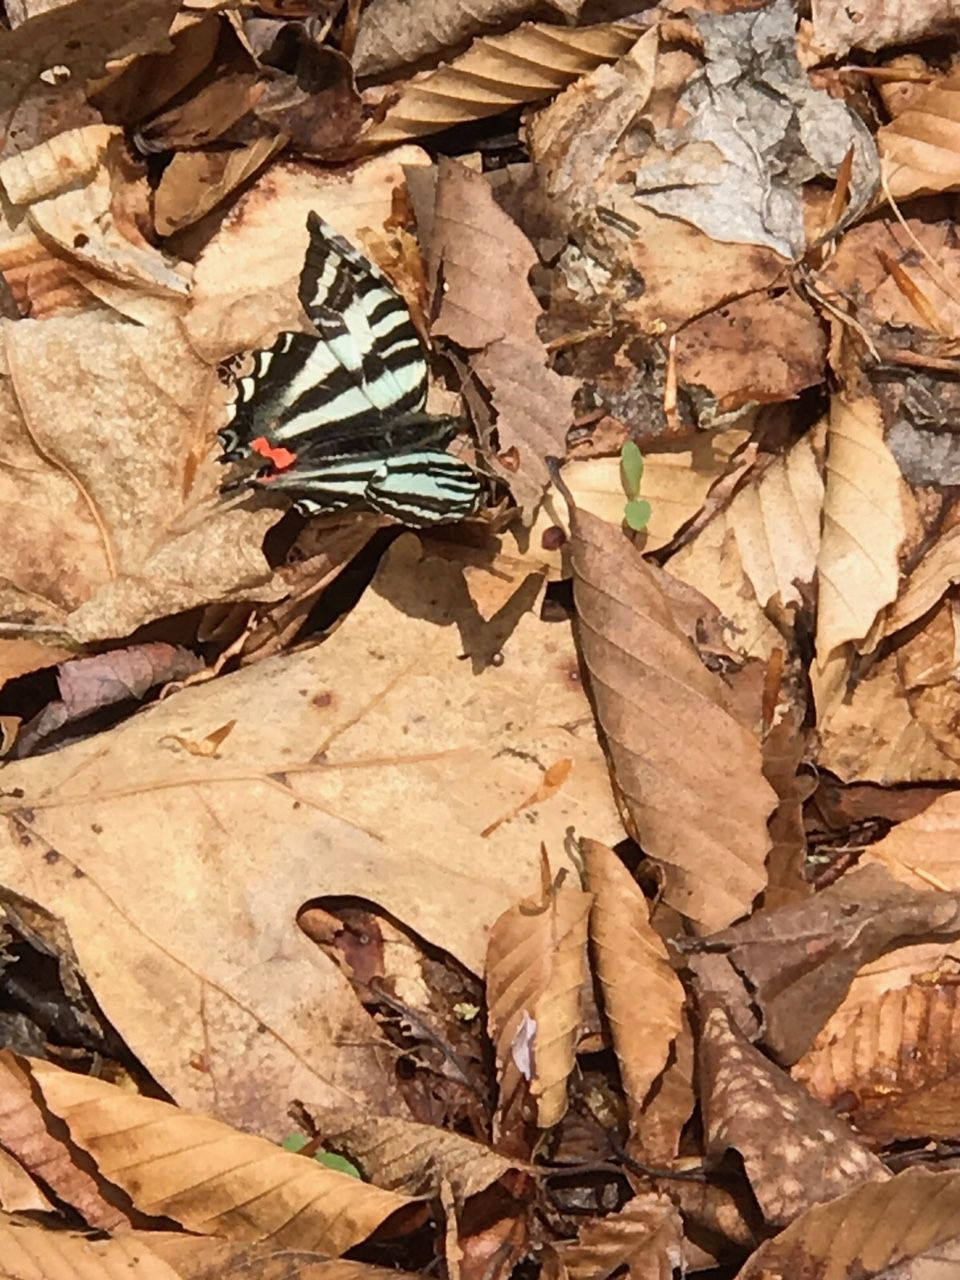 Zebra swallowtail butterfly on a pile of leaves.